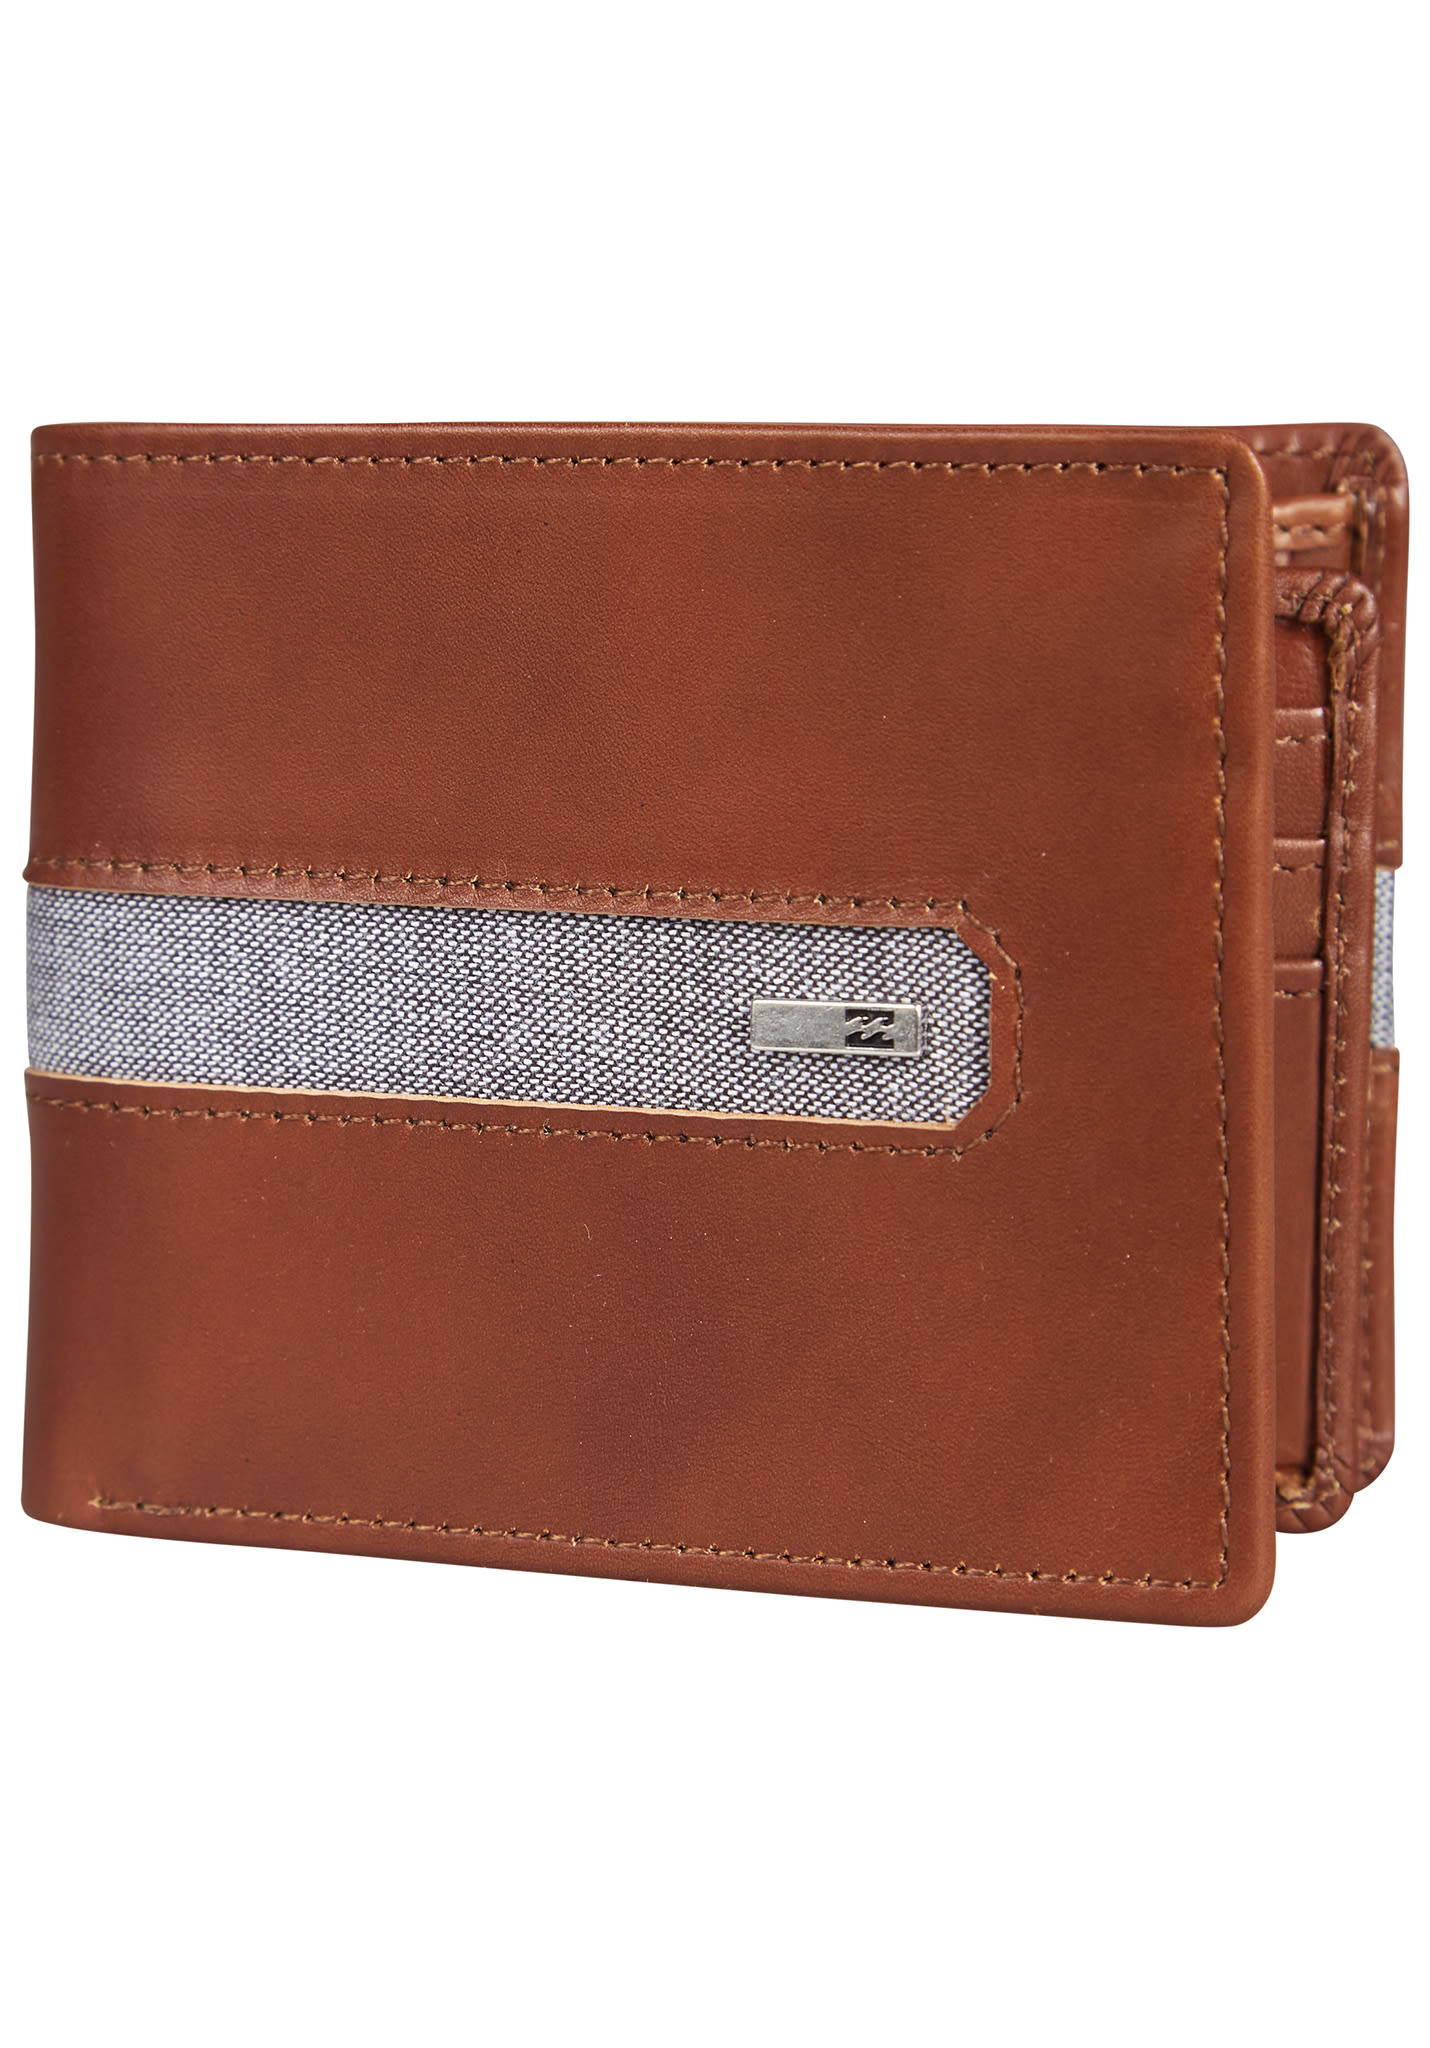 d8252850a BILLABONG D Bah Lthr - Monedero para Hombres - Marrón - Planet Sports